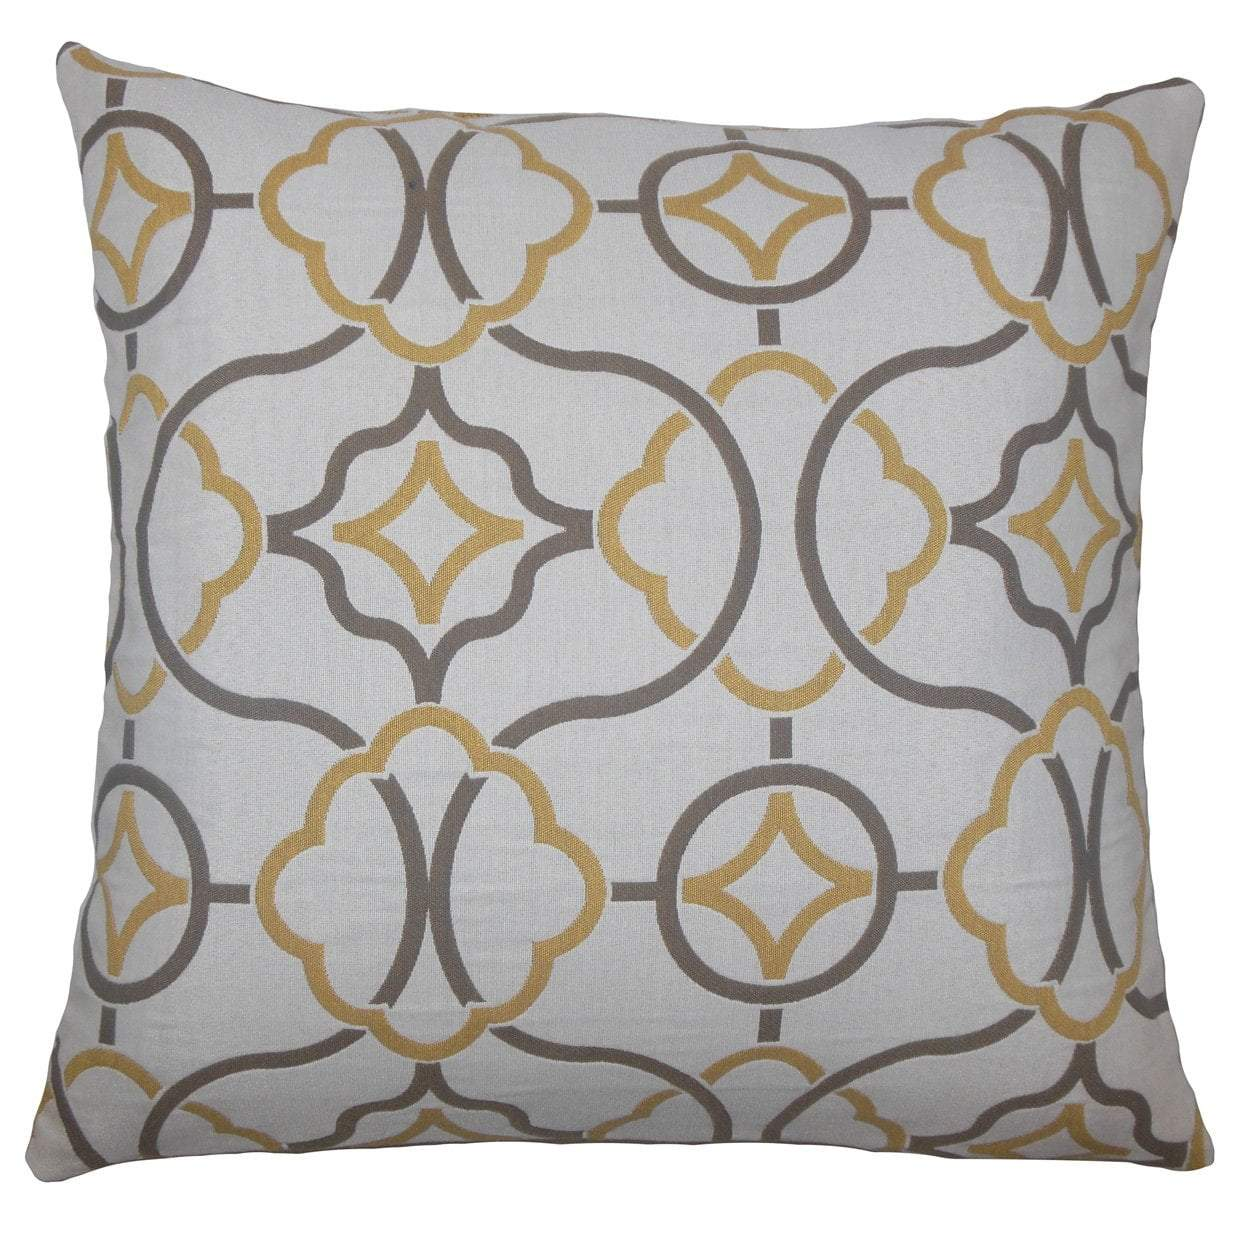 Johnson Throw Pillow Cover